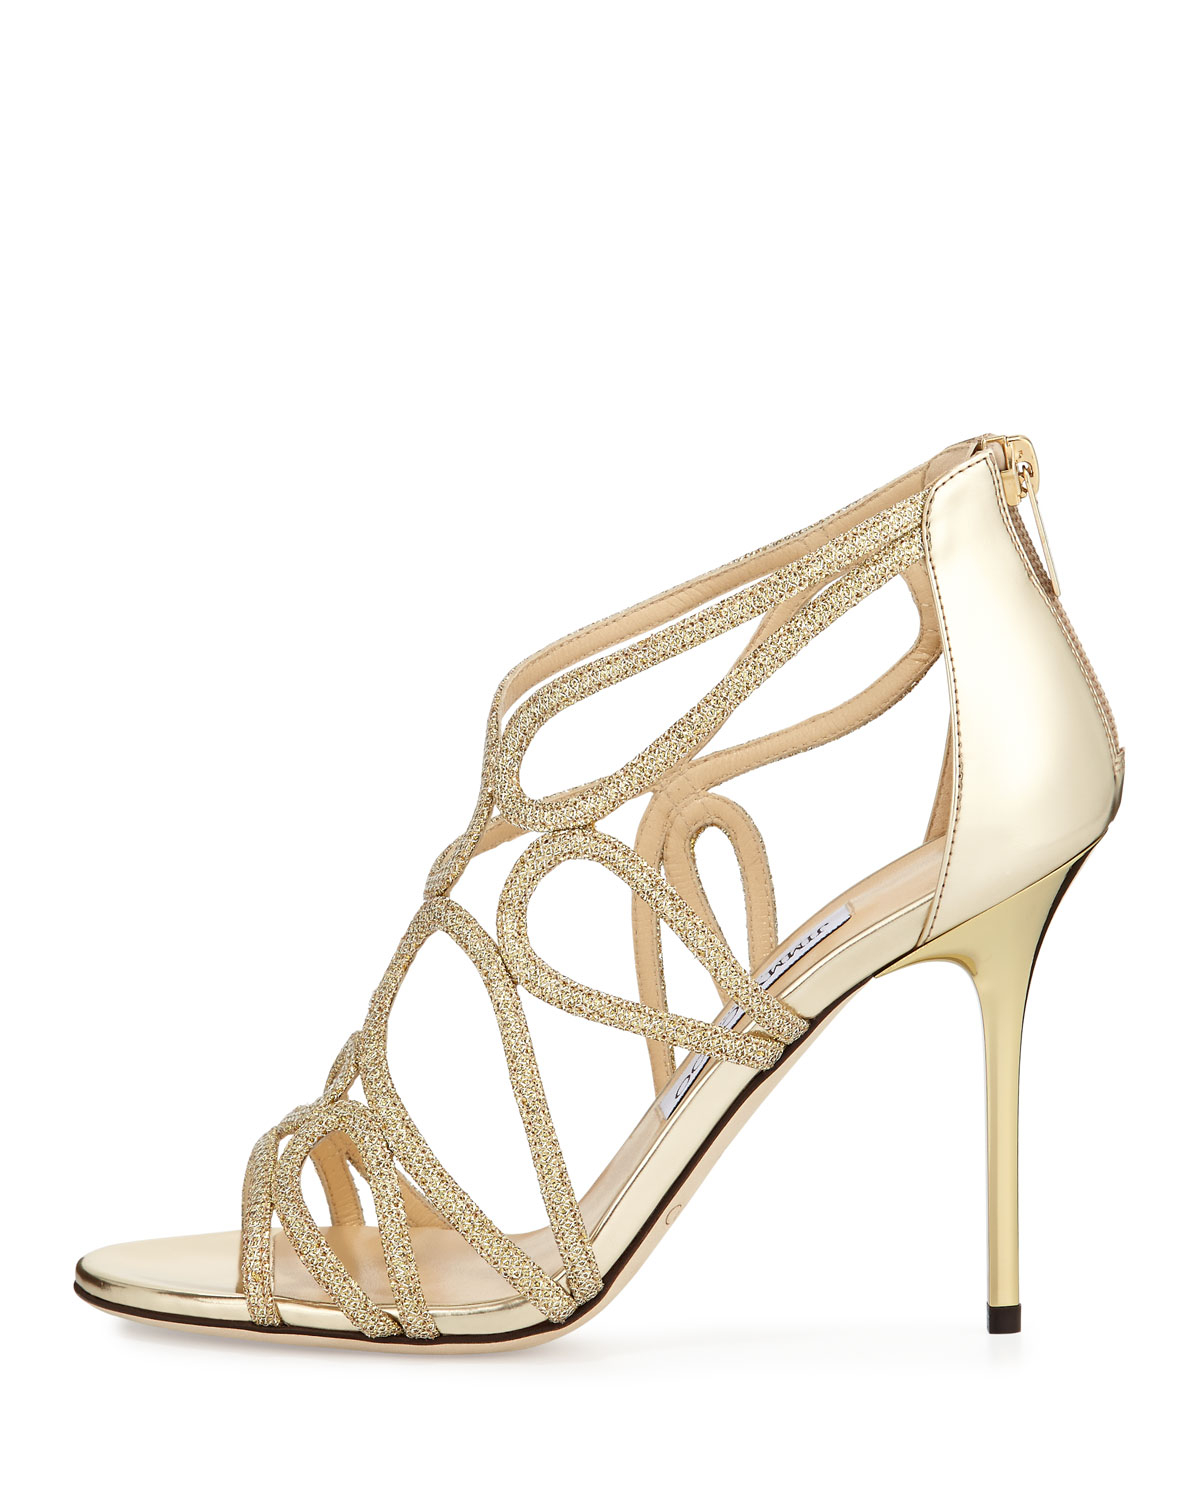 d7fd49e55c7b Lyst - Jimmy Choo Layla Metallic Sandals in Metallic